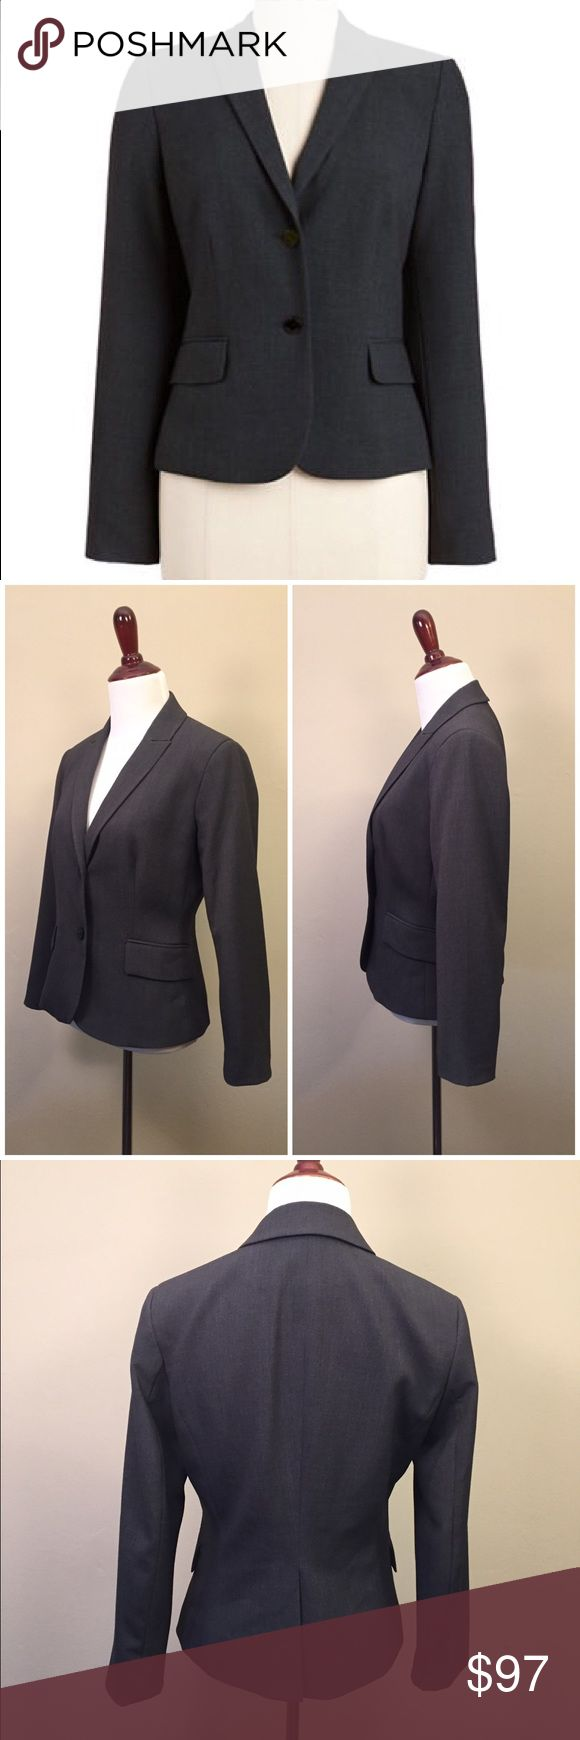 NWOT Tory Burch Two Button Blazer This Tory Burch blazer is a wardrobe essential. Fully lined in a two-button cut, this blazer keeps you comfortable throughout the day and into evening hours with friends. Notched lapel collar Faux front pockets Polyester/rayon/spandex Dry clean Comes from a smoke and pet free home. Item is new without tags and has never been worn Tory Burch Jackets & Coats Blazers